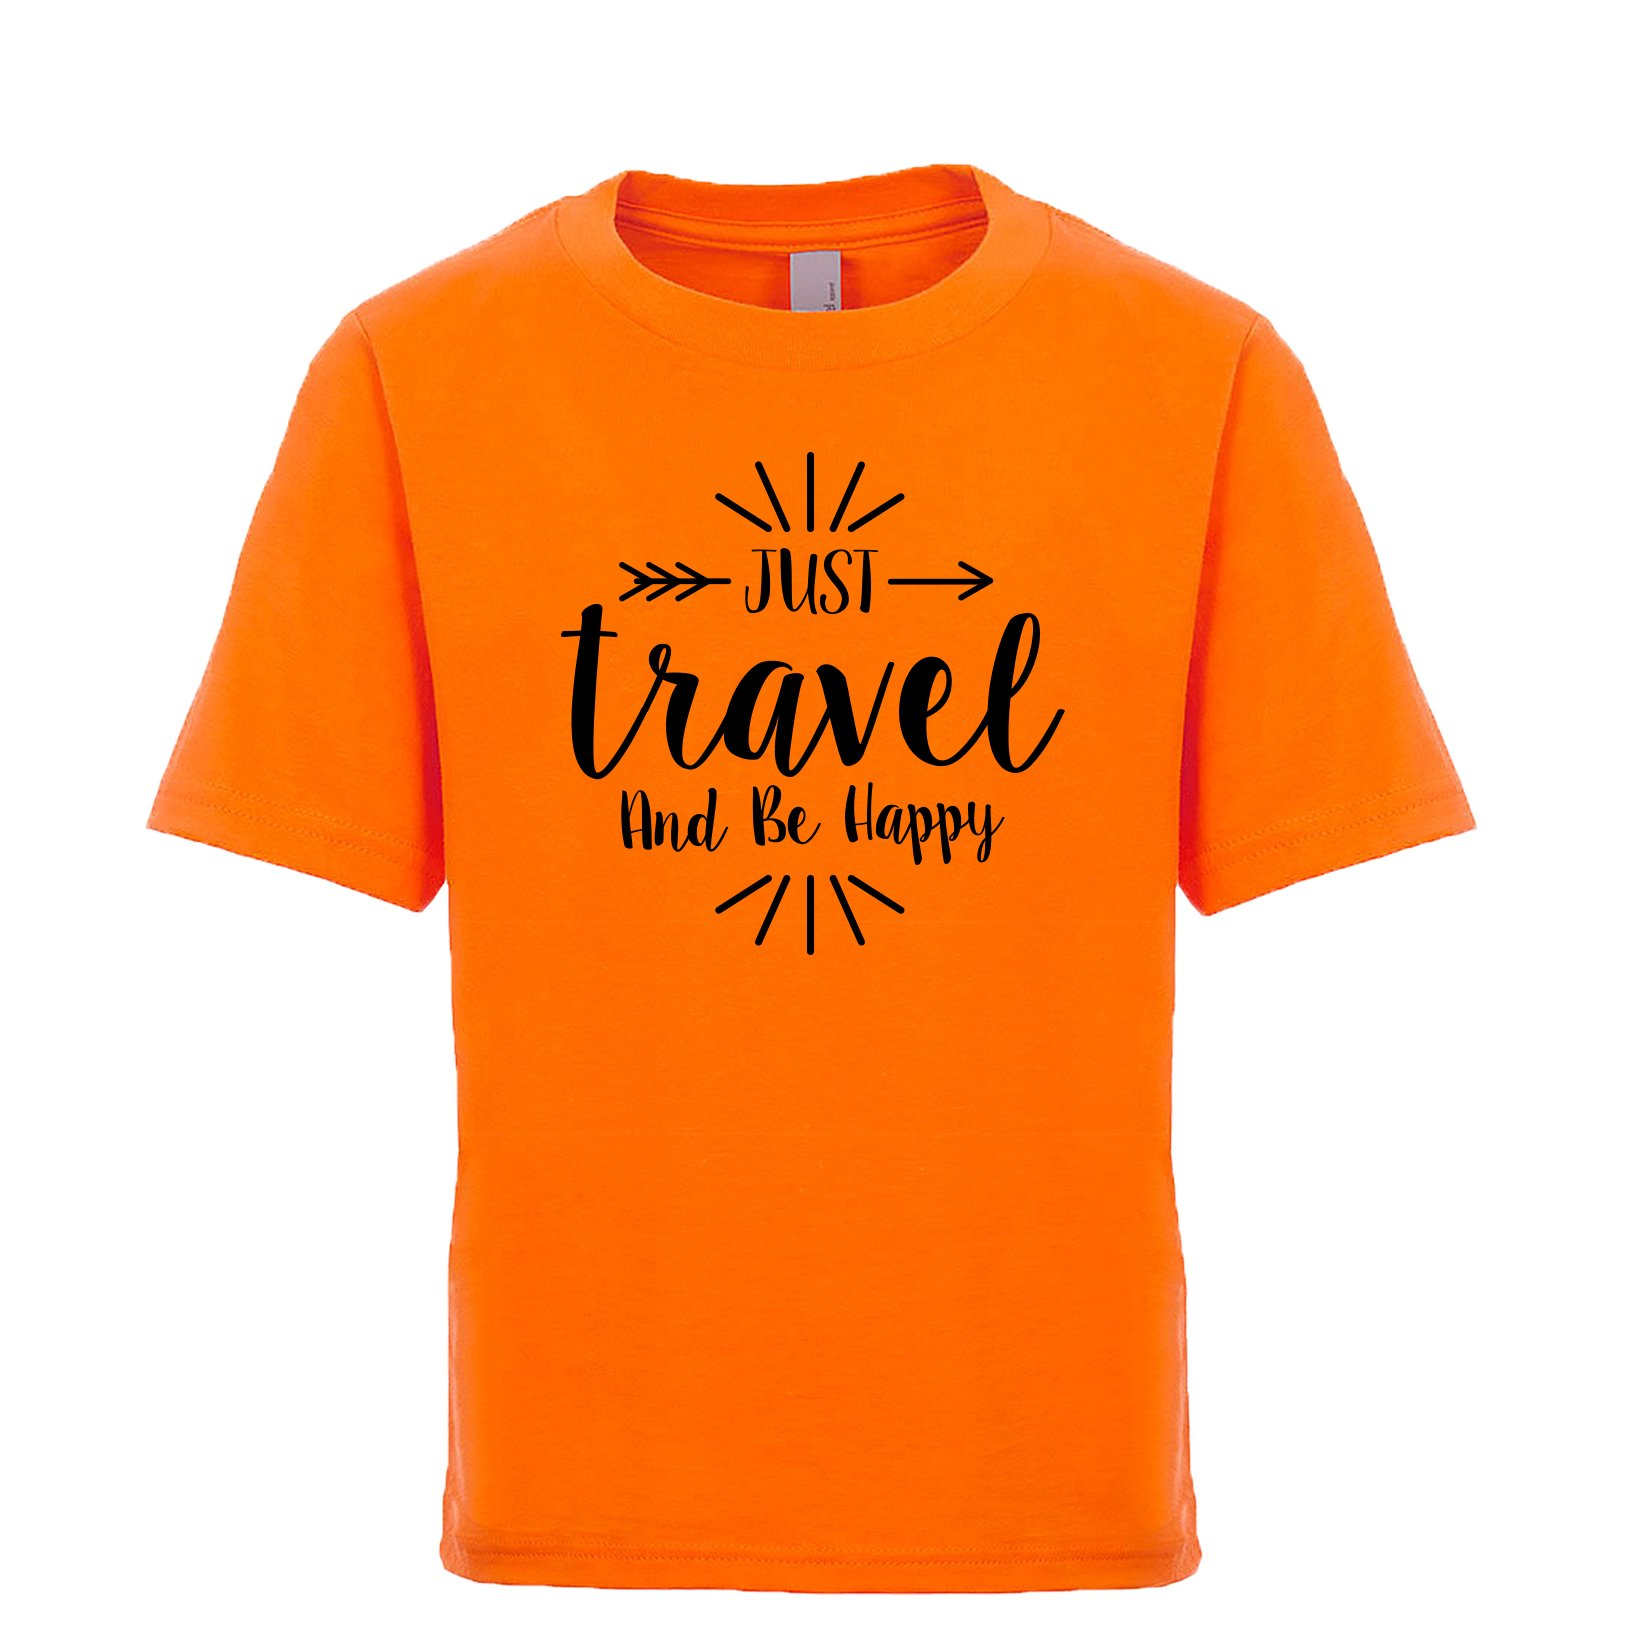 Shirtgoals Just Travel and be Happy Unisex Kids Tee Orange Large